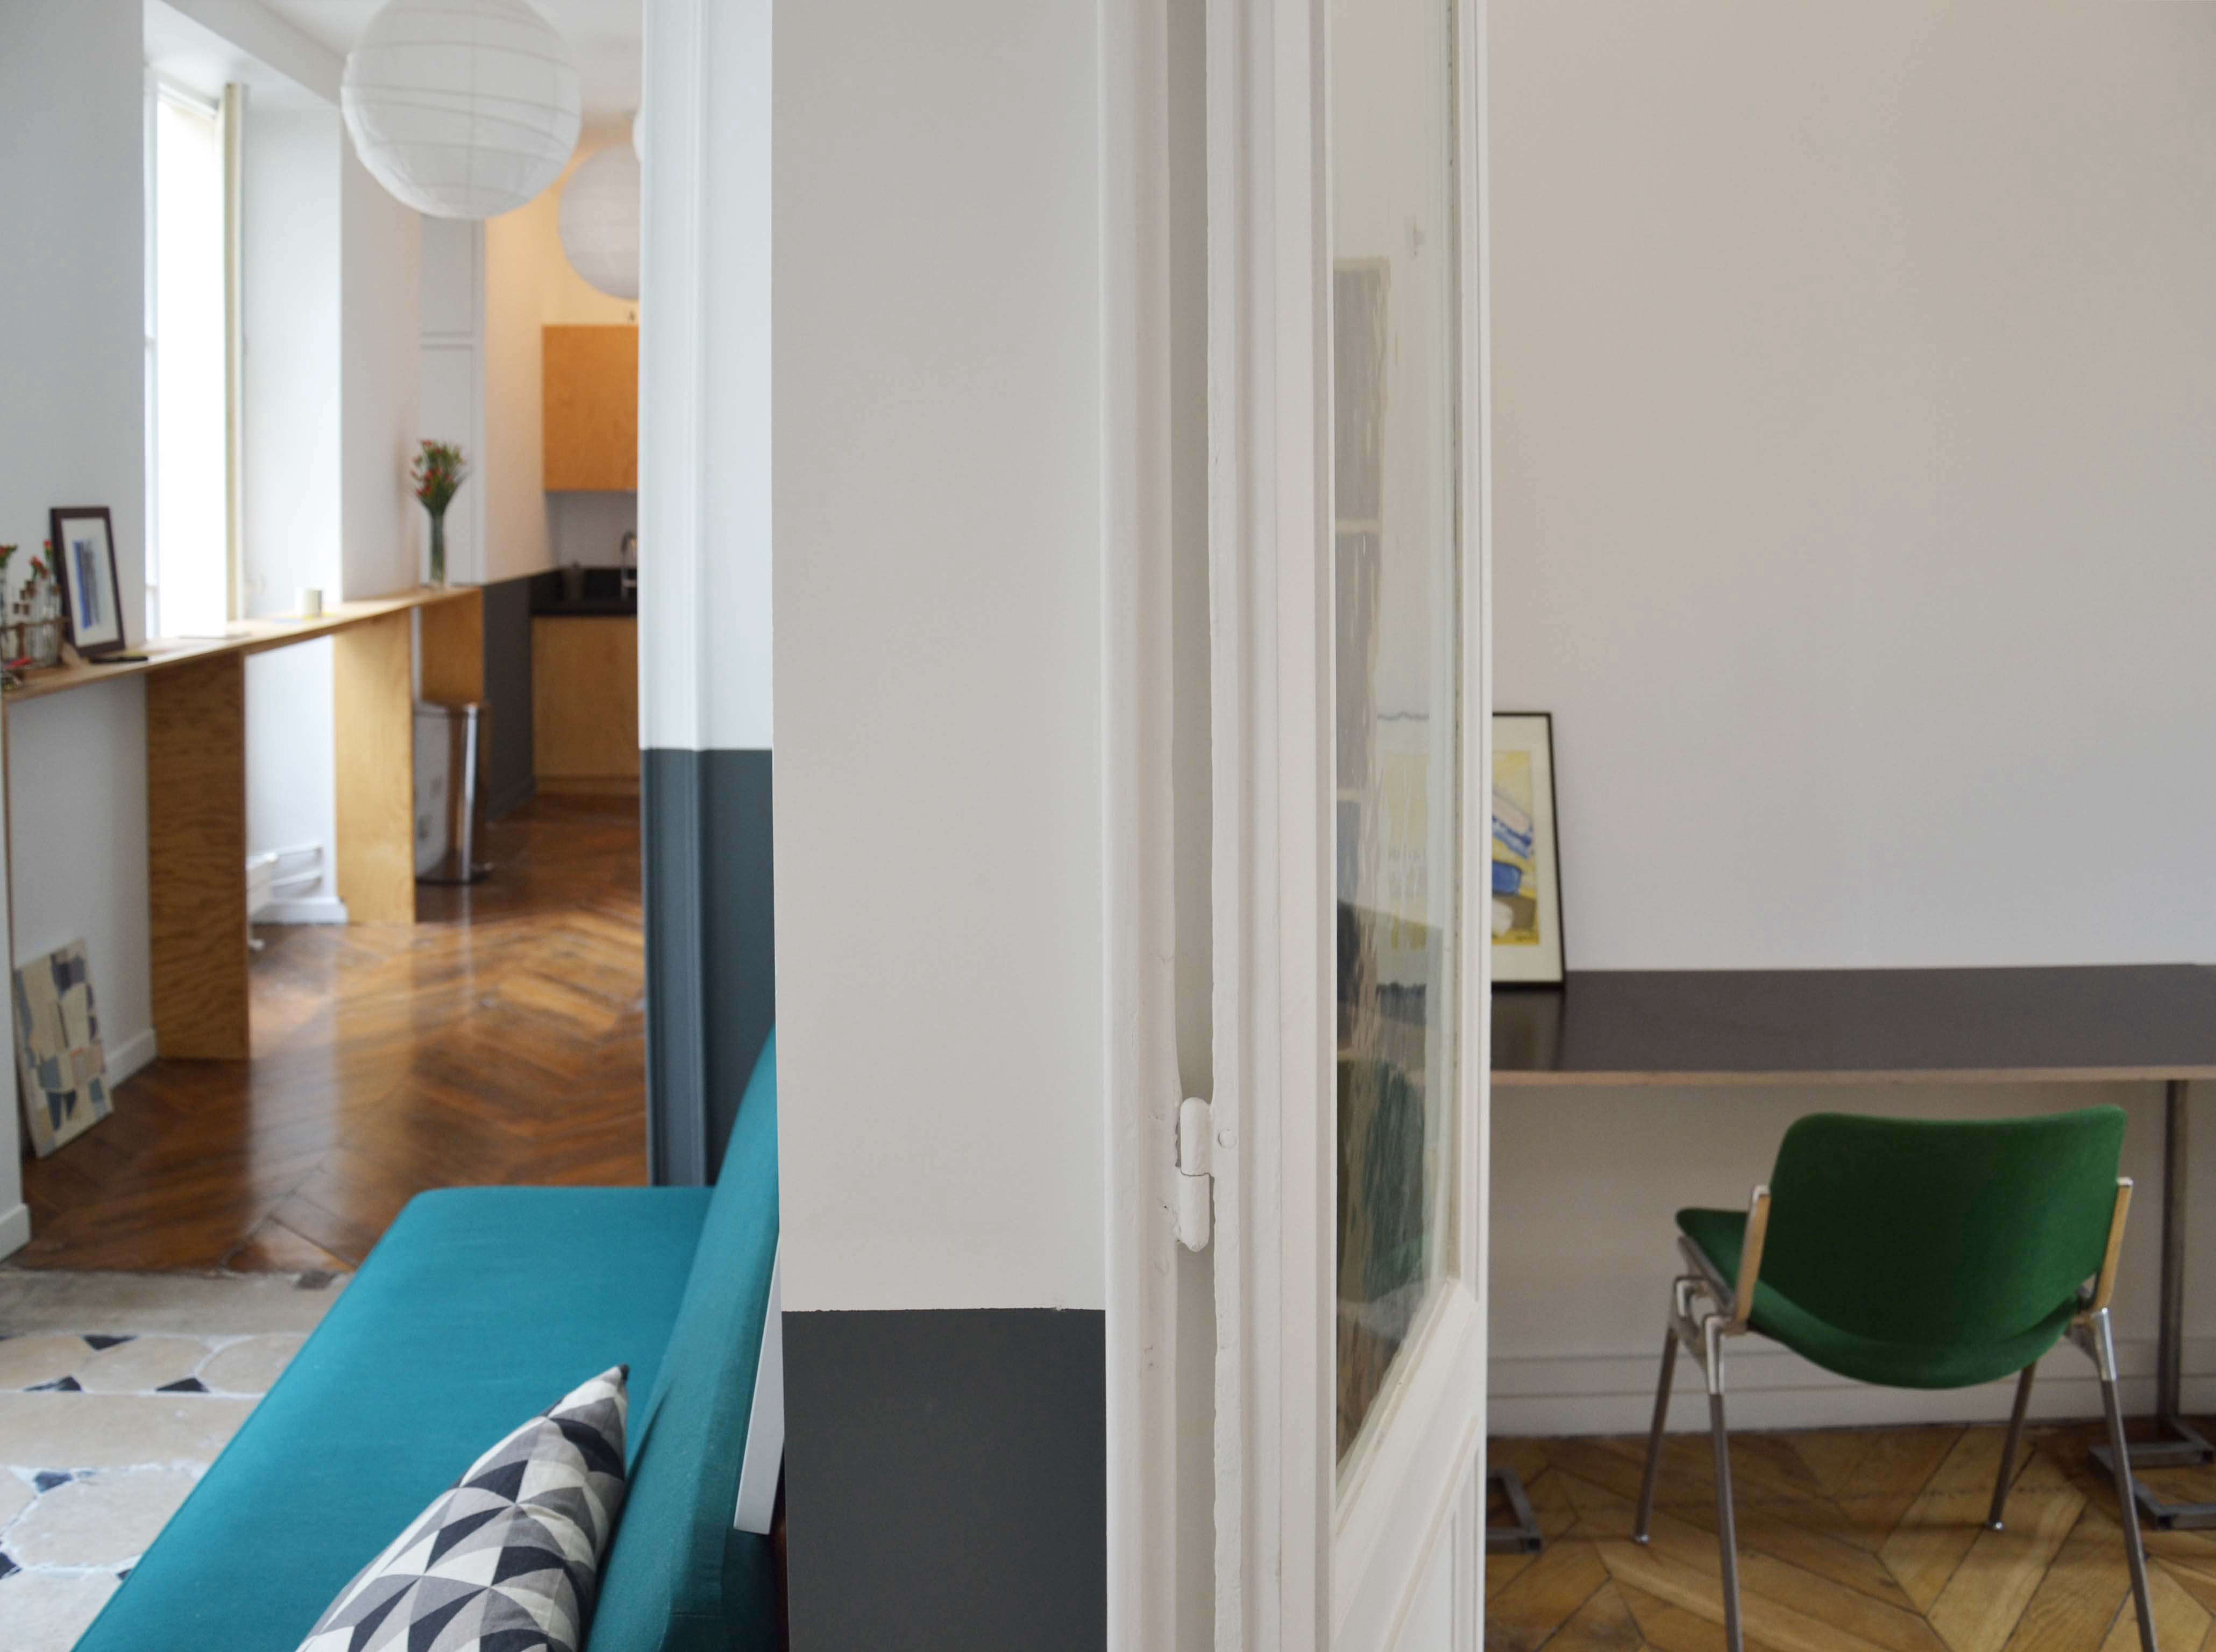 Trend Alert 5 Shared Workspaces Gone Upscale View of Desk and Hallway at Artichaut Paris